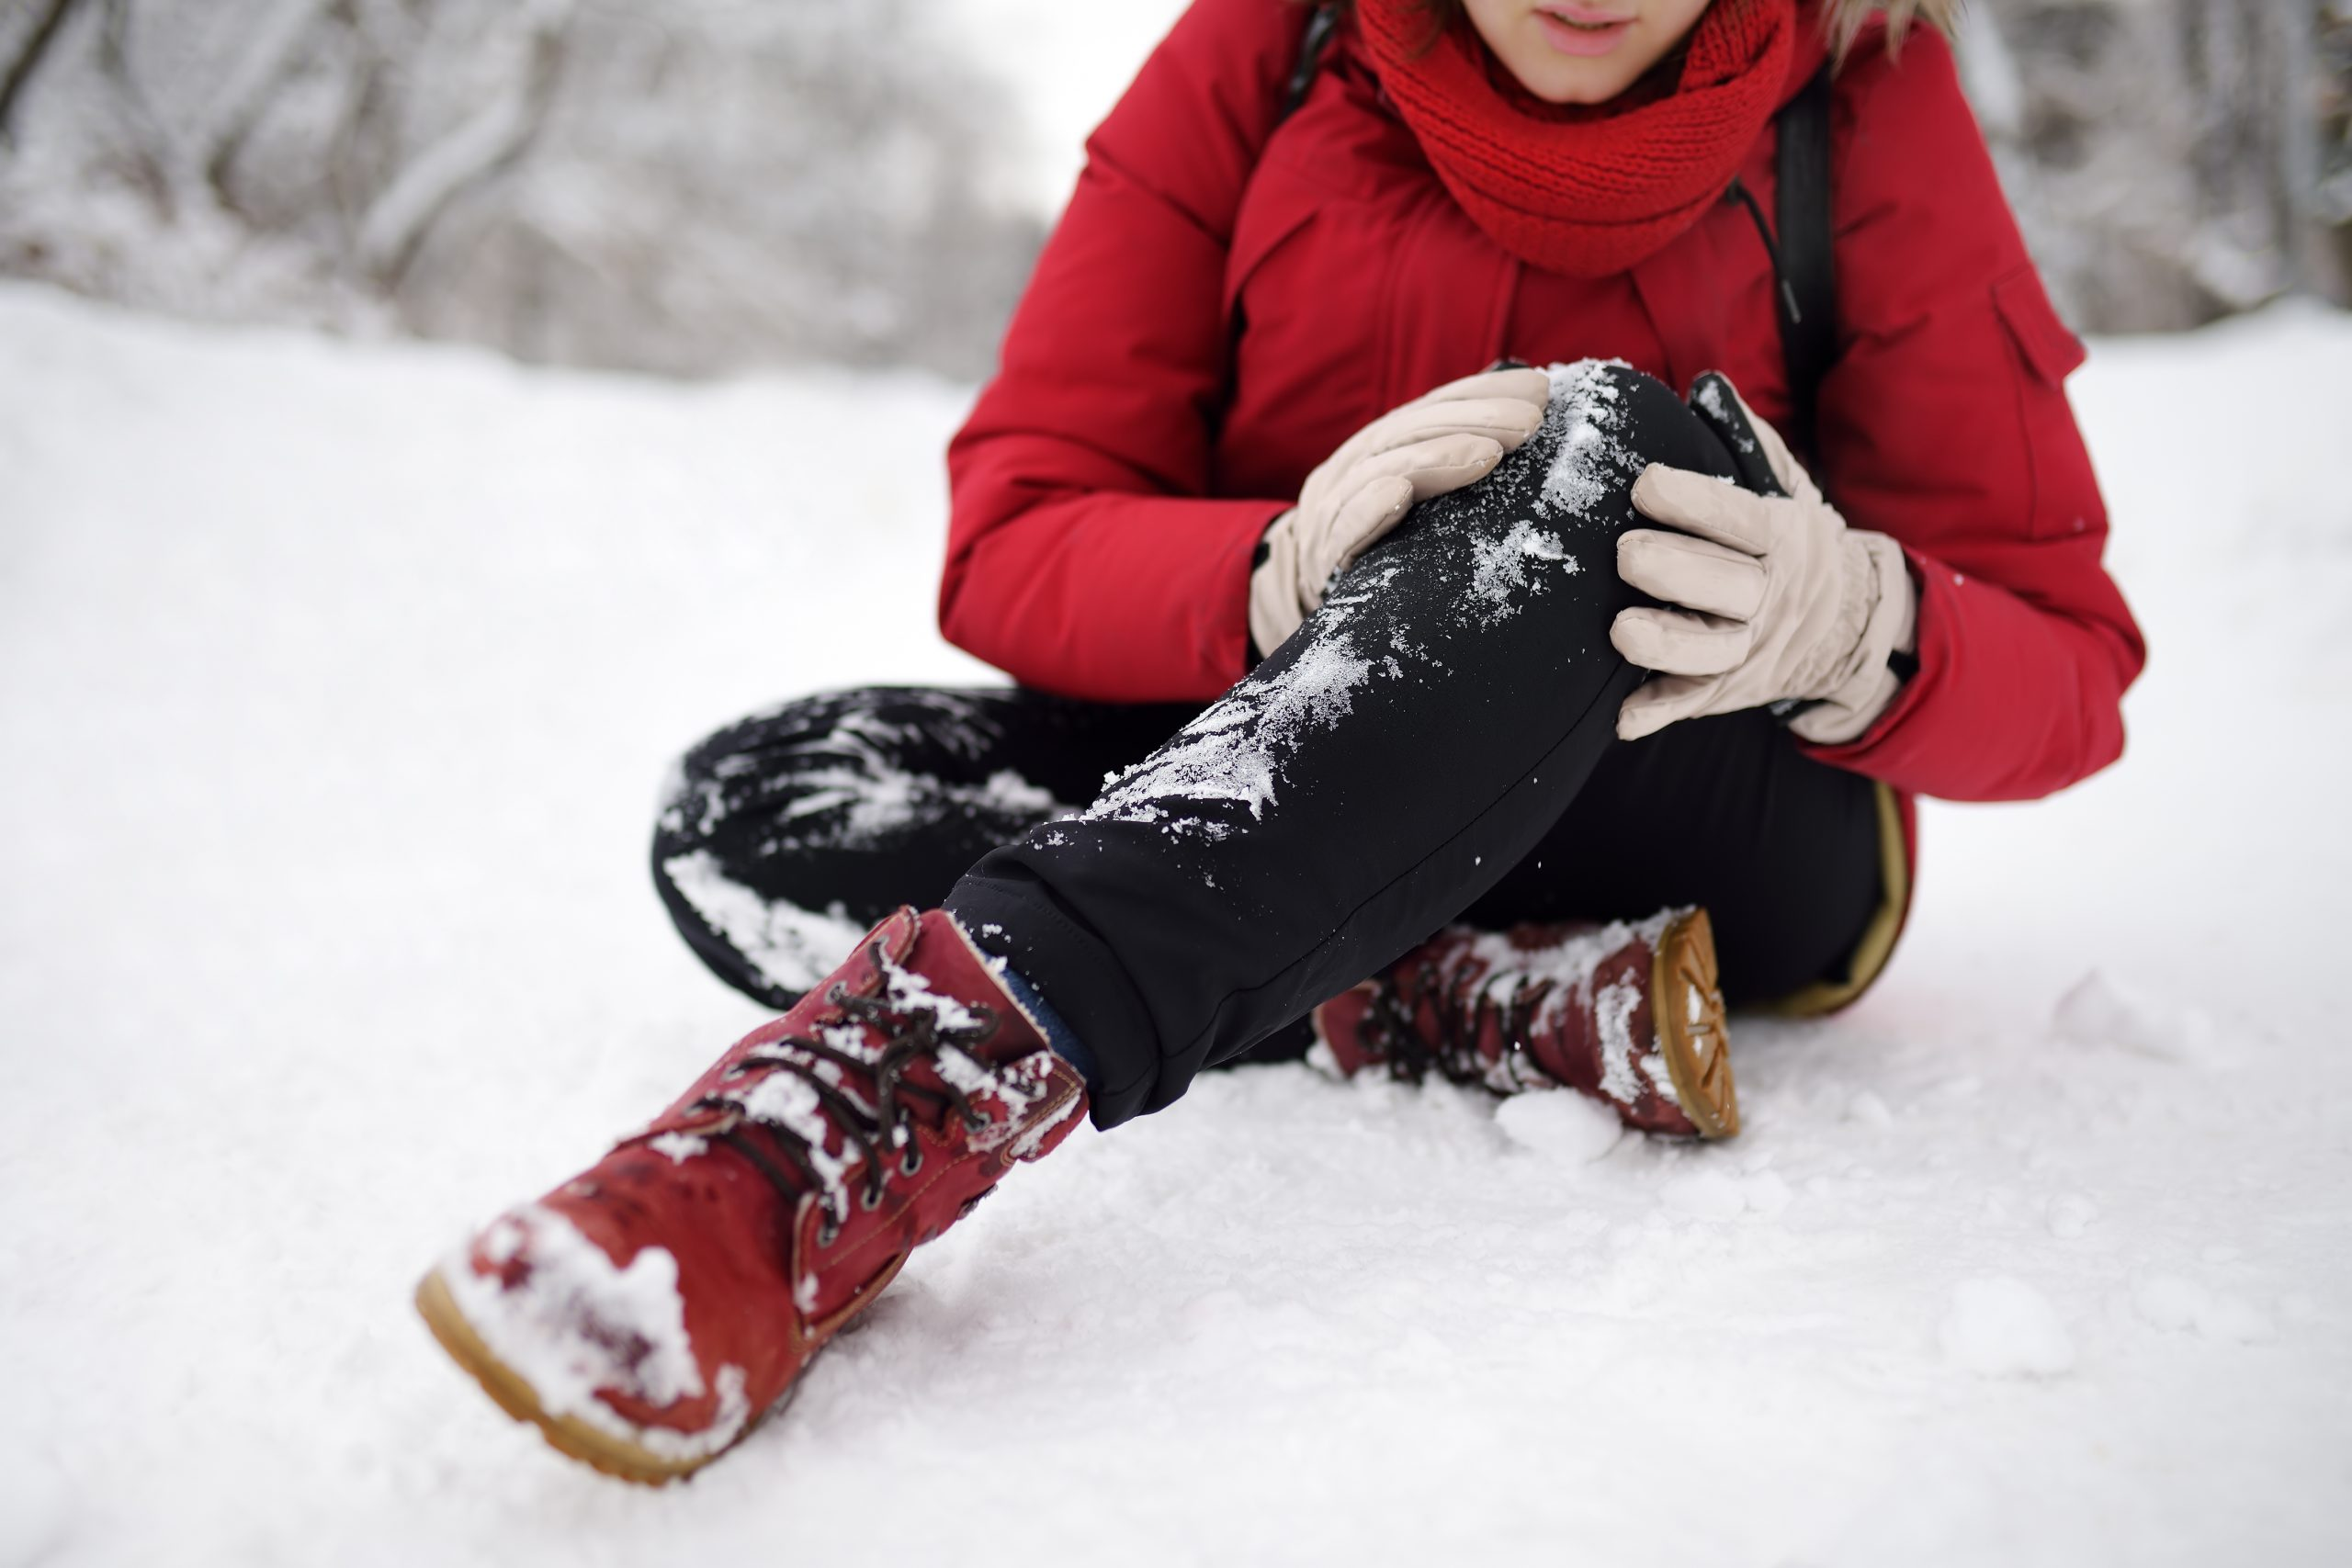 New 60 day Time Limit For Injuries from Snow and Ice